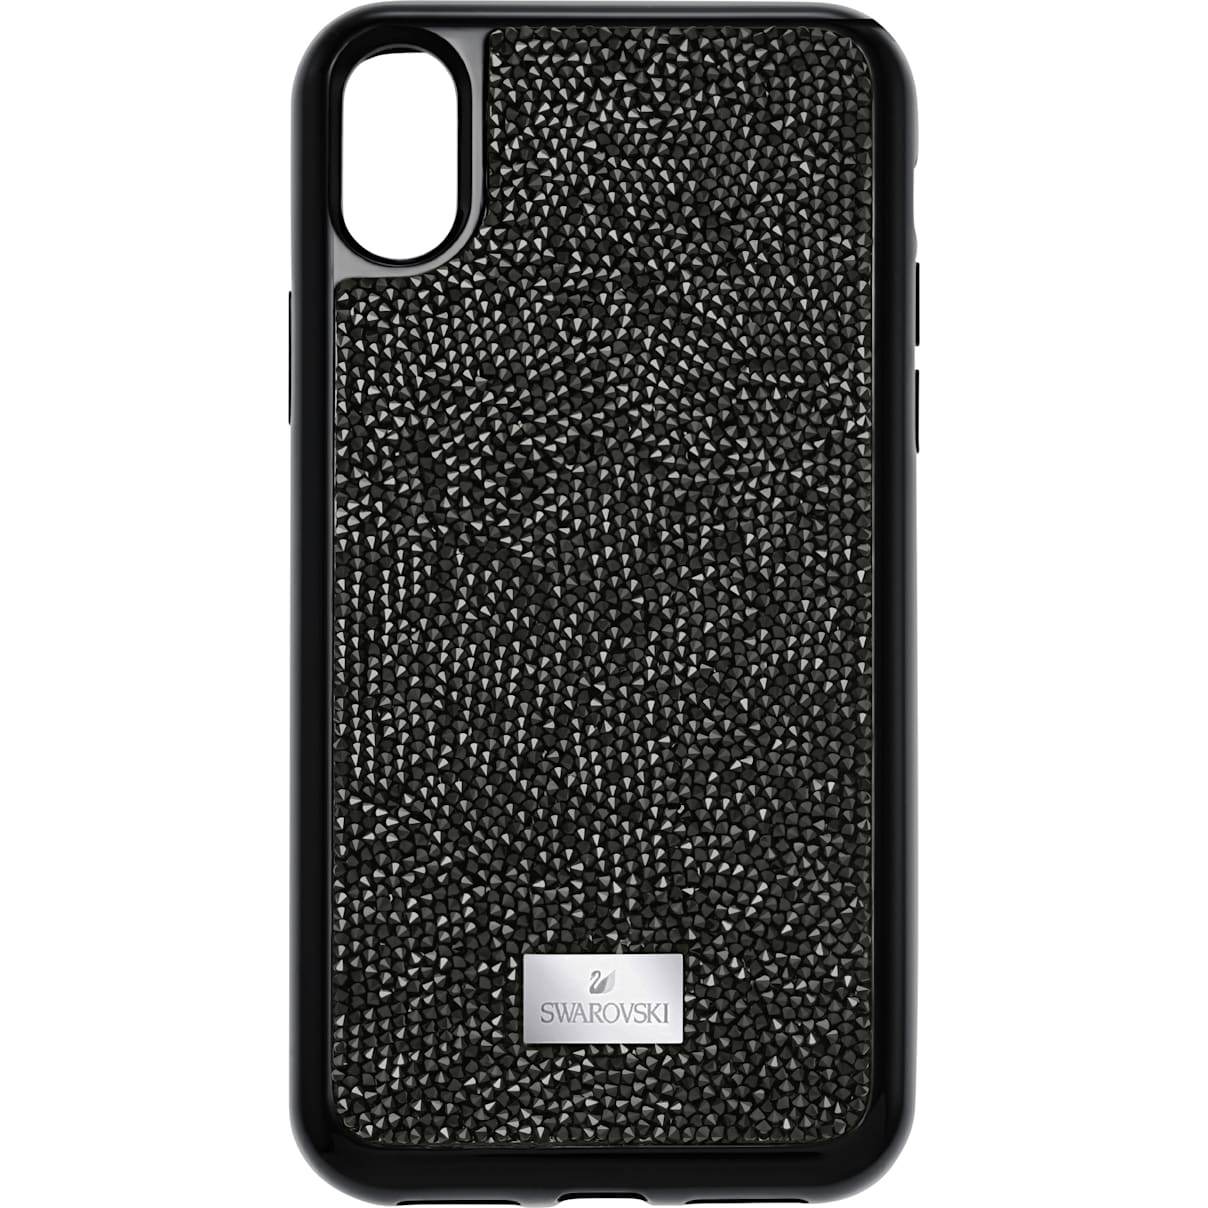 Swarovski Glam Rock Smartphone Case with integrated Bumper, iPhone® X/XS, Black